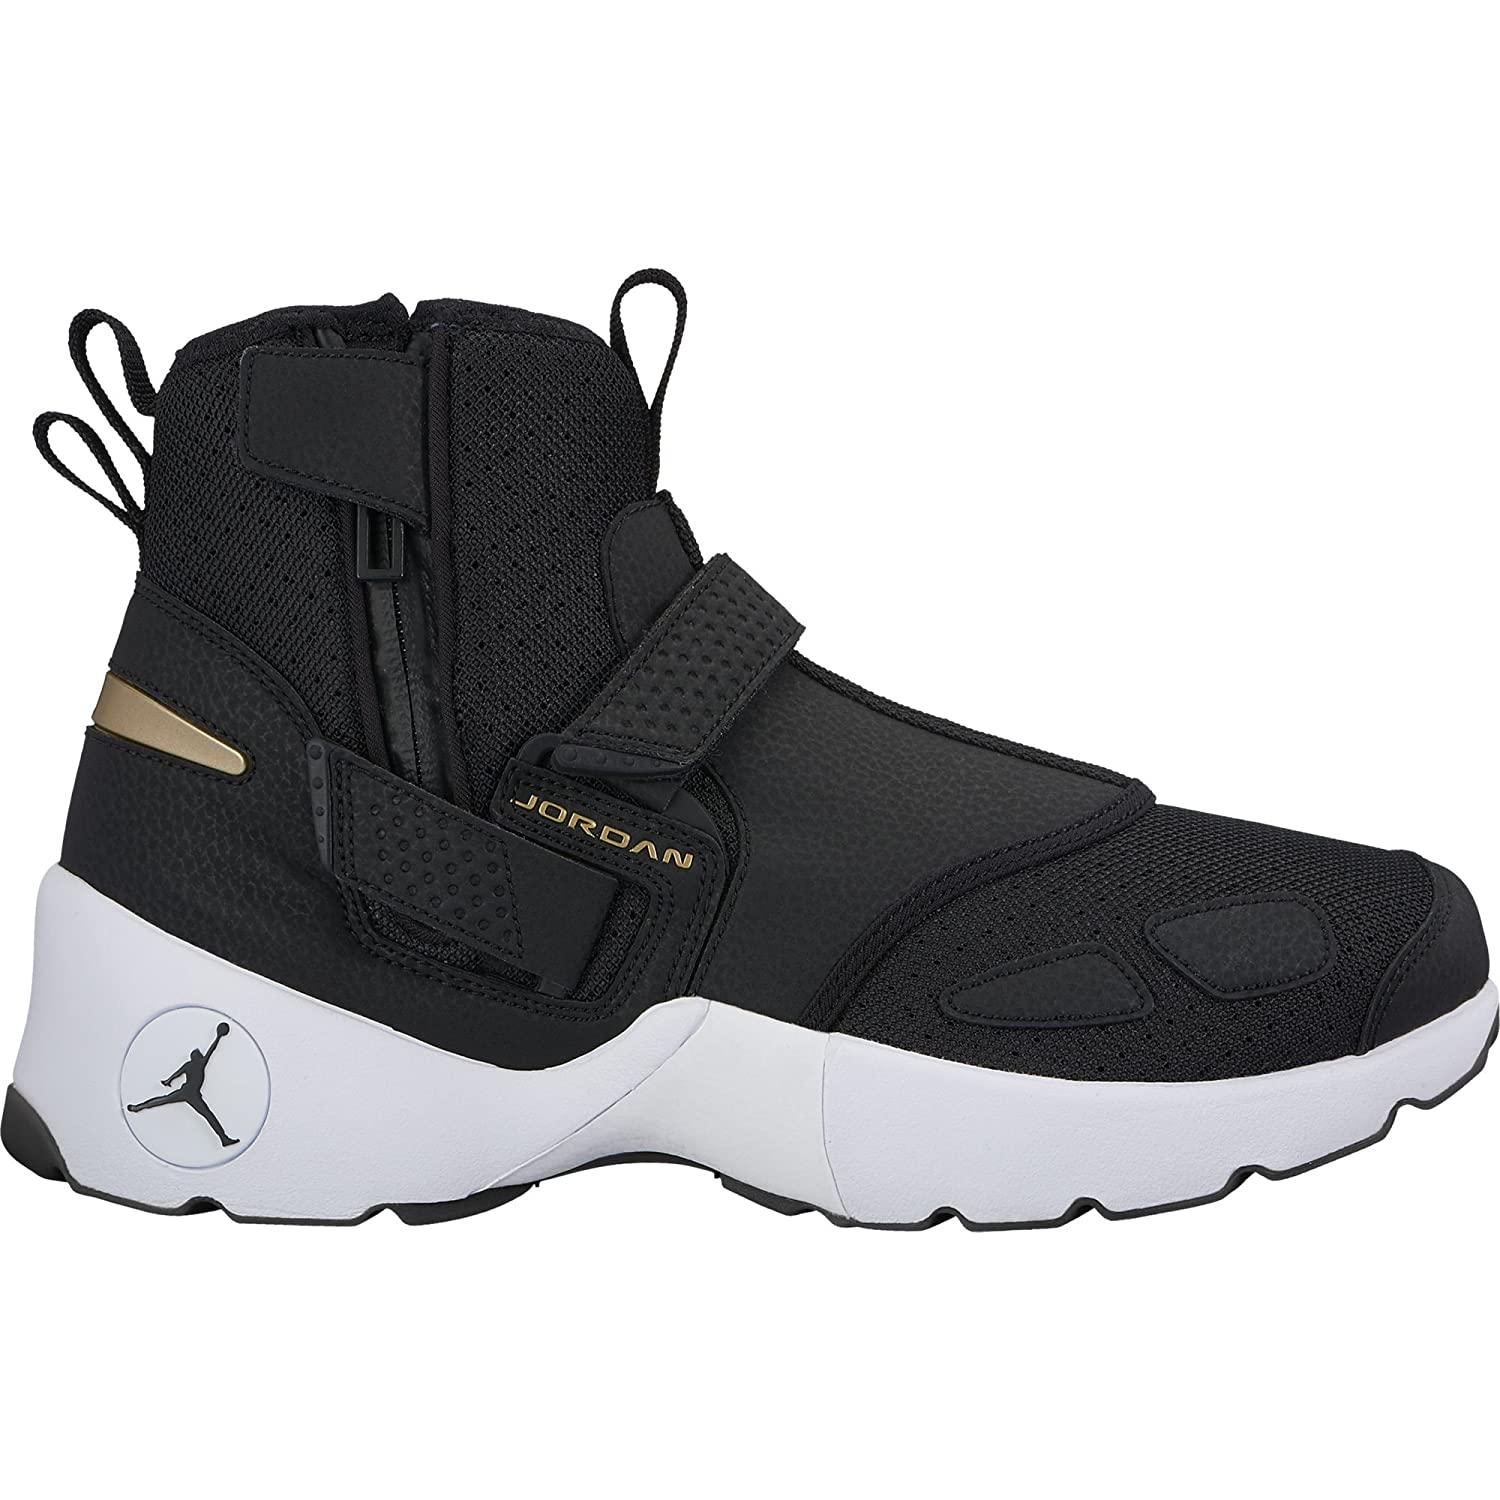 Man's/Woman's Jordan Nike Men's Trunner LX High Boot low High quality and low Boot overhead Cheaper than the price Preferred boutique BG24776 14c36f